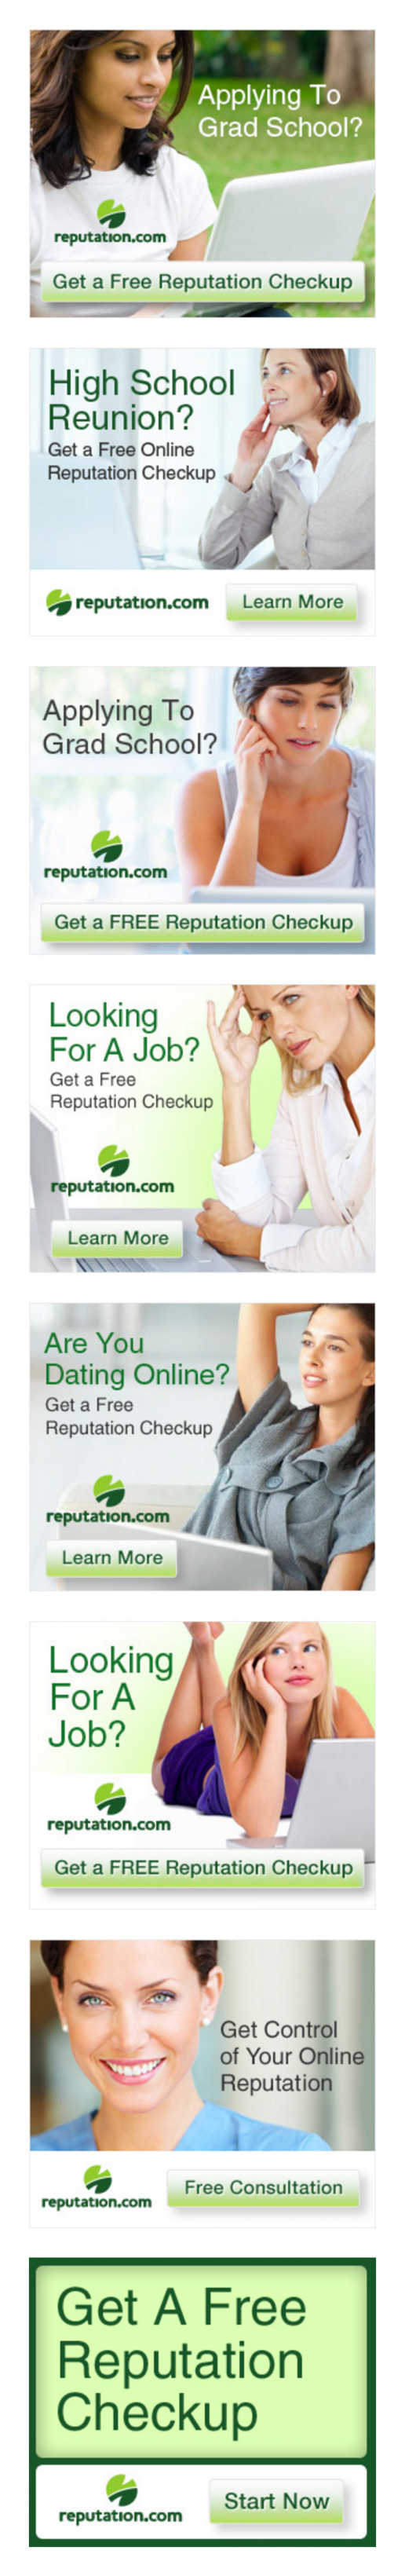 reputation-free-checkup-300×250-banner-ad-examples